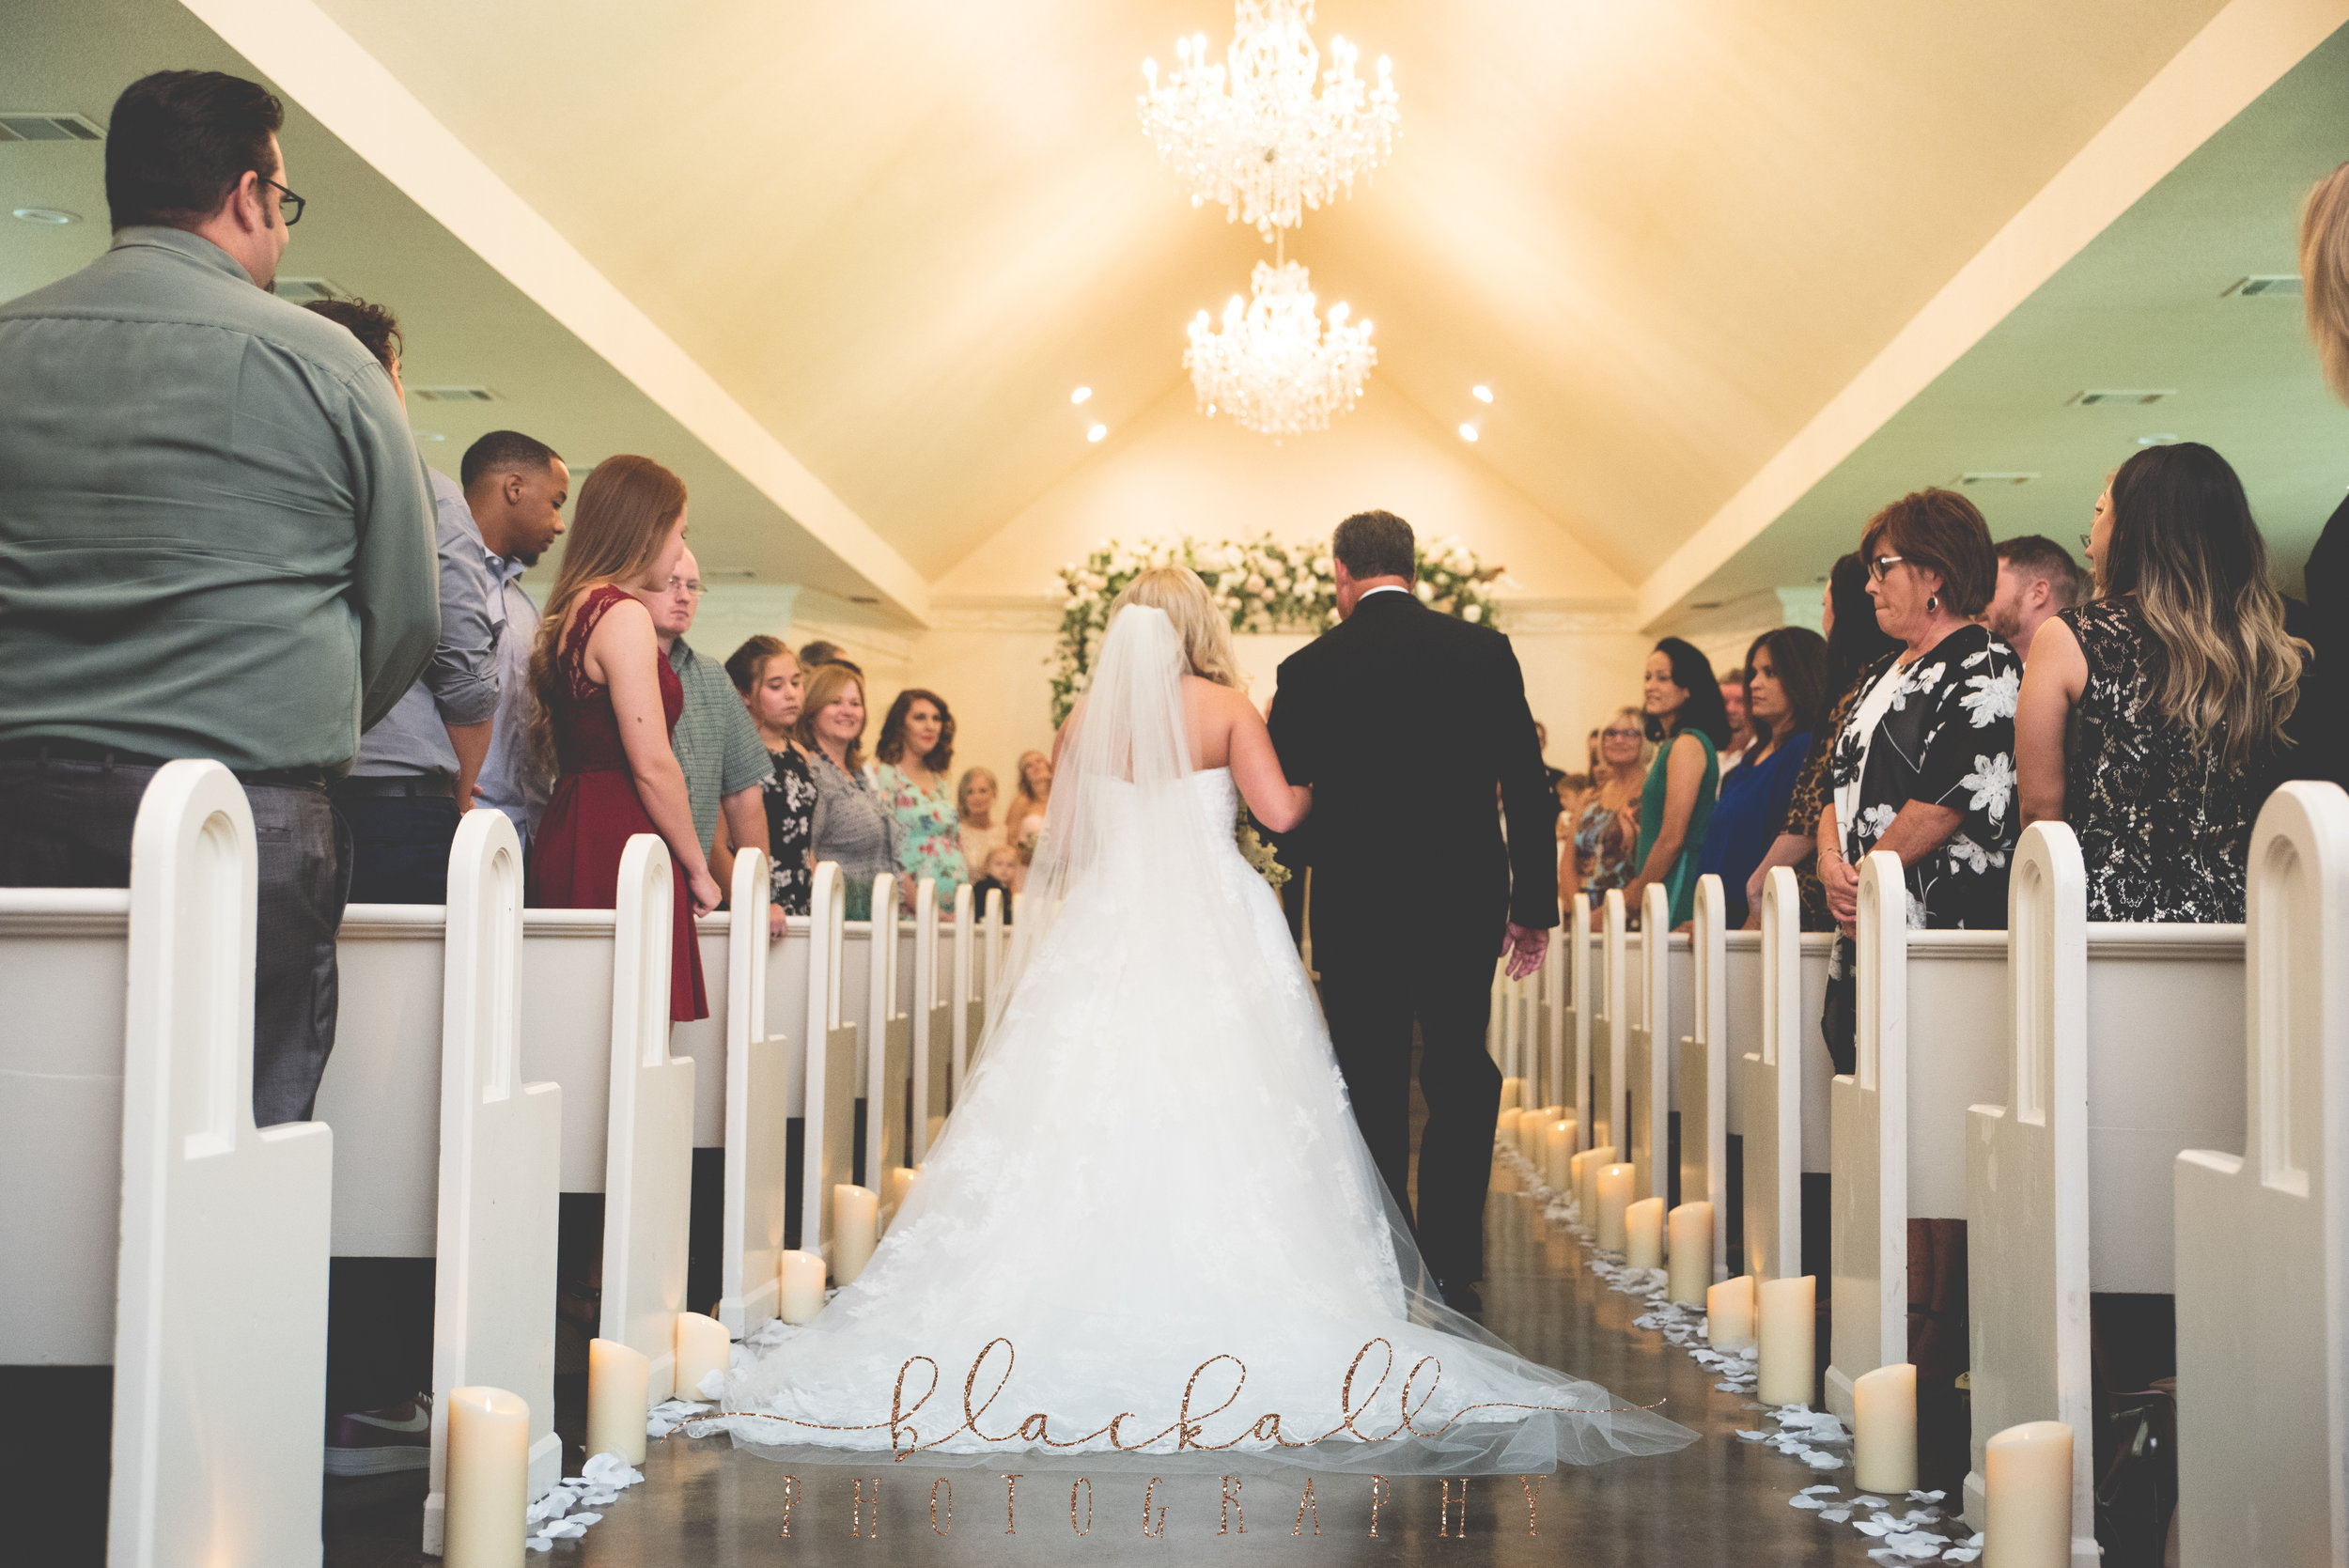 WEDDING_BlackallPhotography_25.JPG